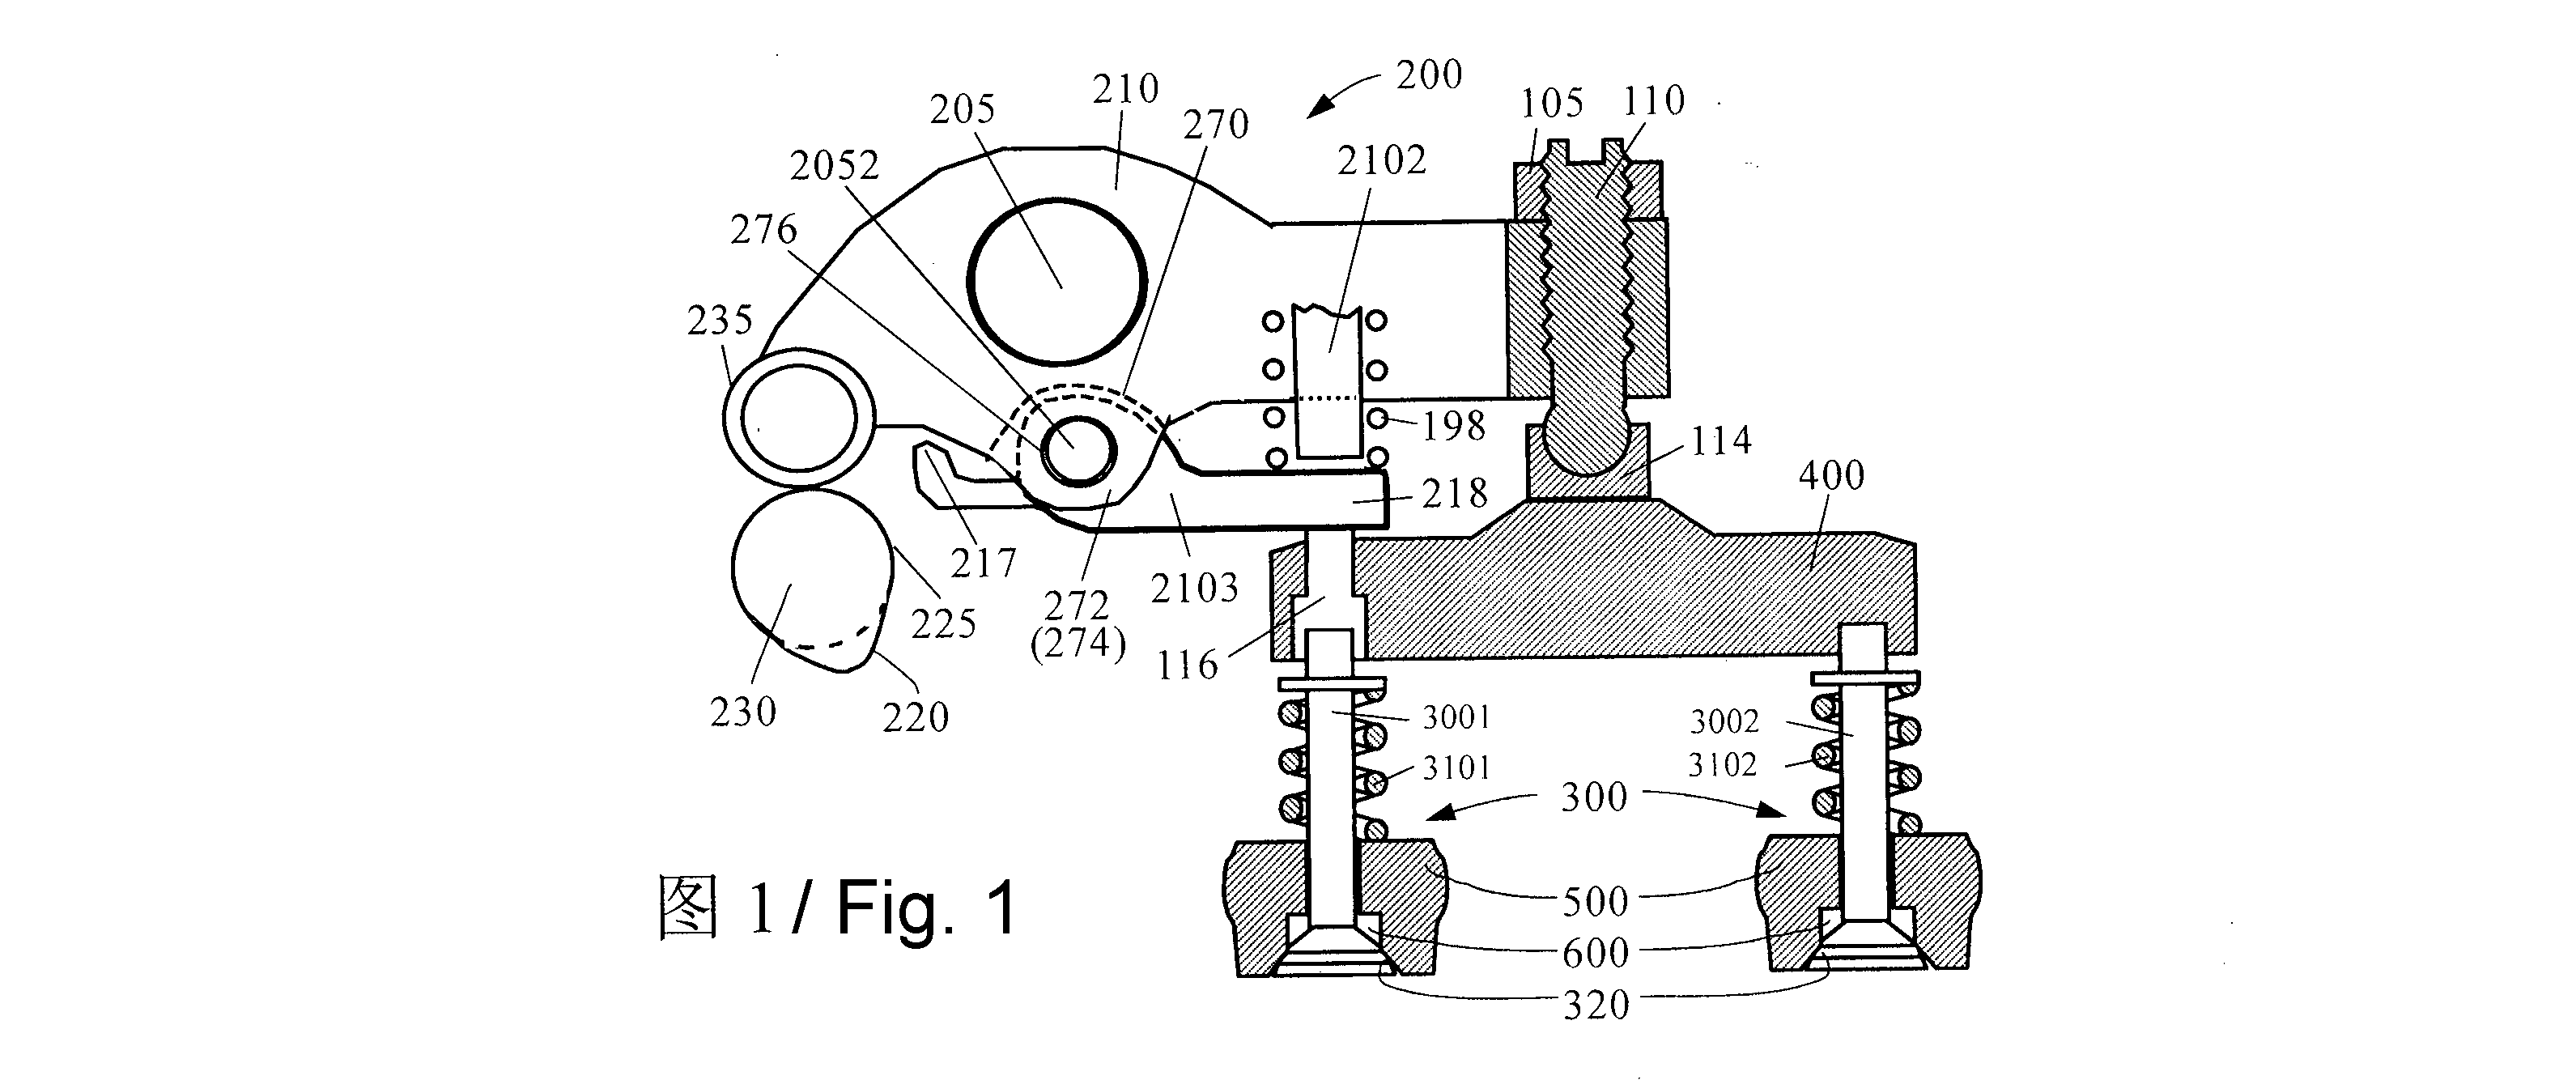 Wo2012083574a1 Combined Rocker Arm Apparatus For Actuating Auxiliary Engine Diagram Valve Of